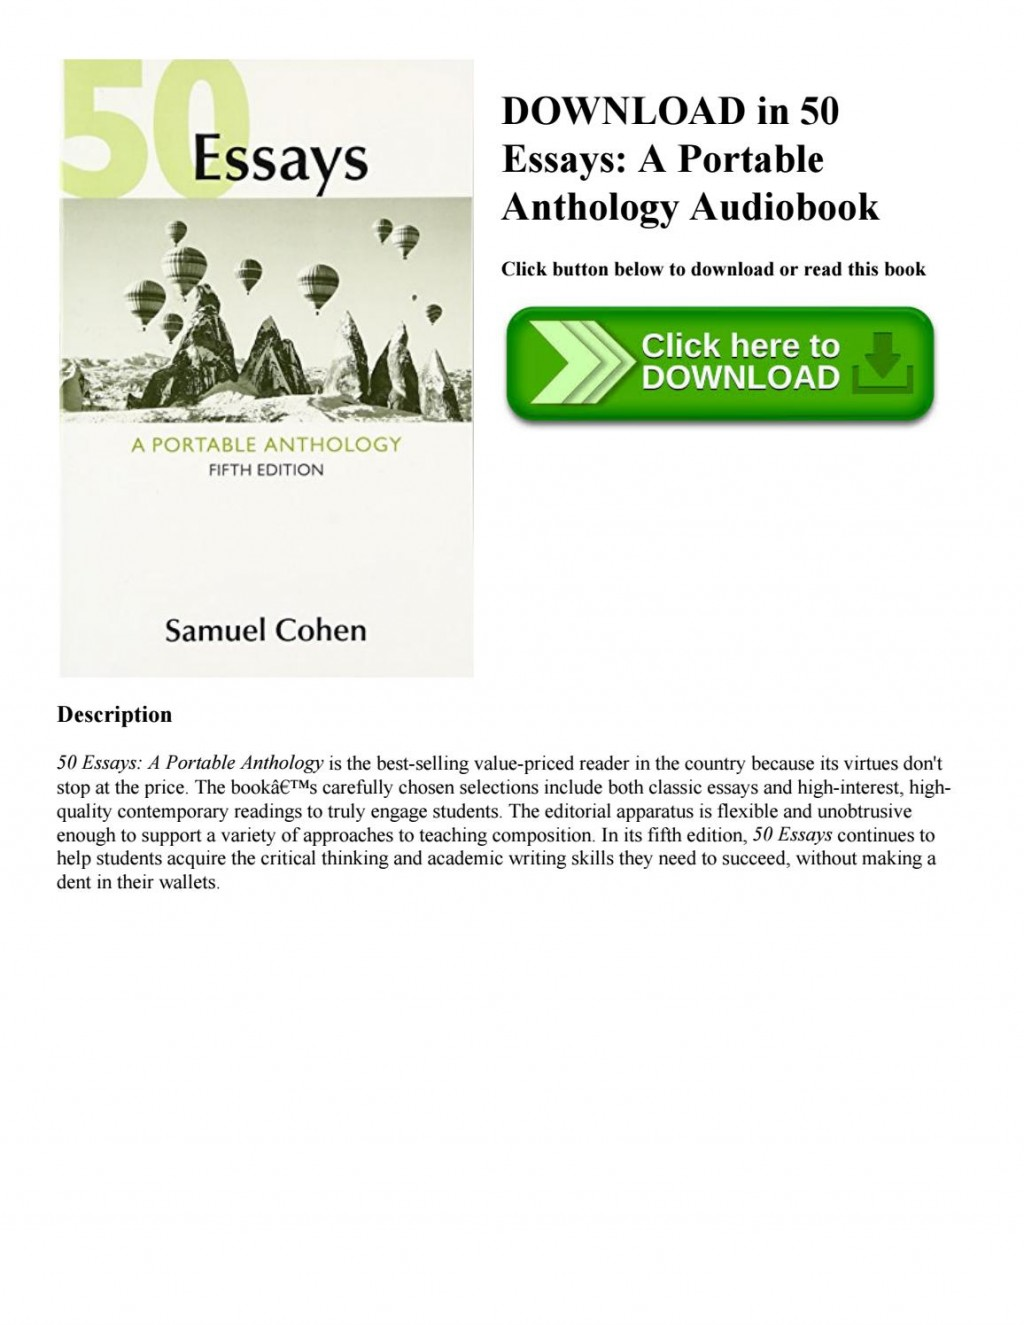 005 Essay Example Essays Portable Anthology 5th Edition Pdf Page 1 Fascinating 50 A Large